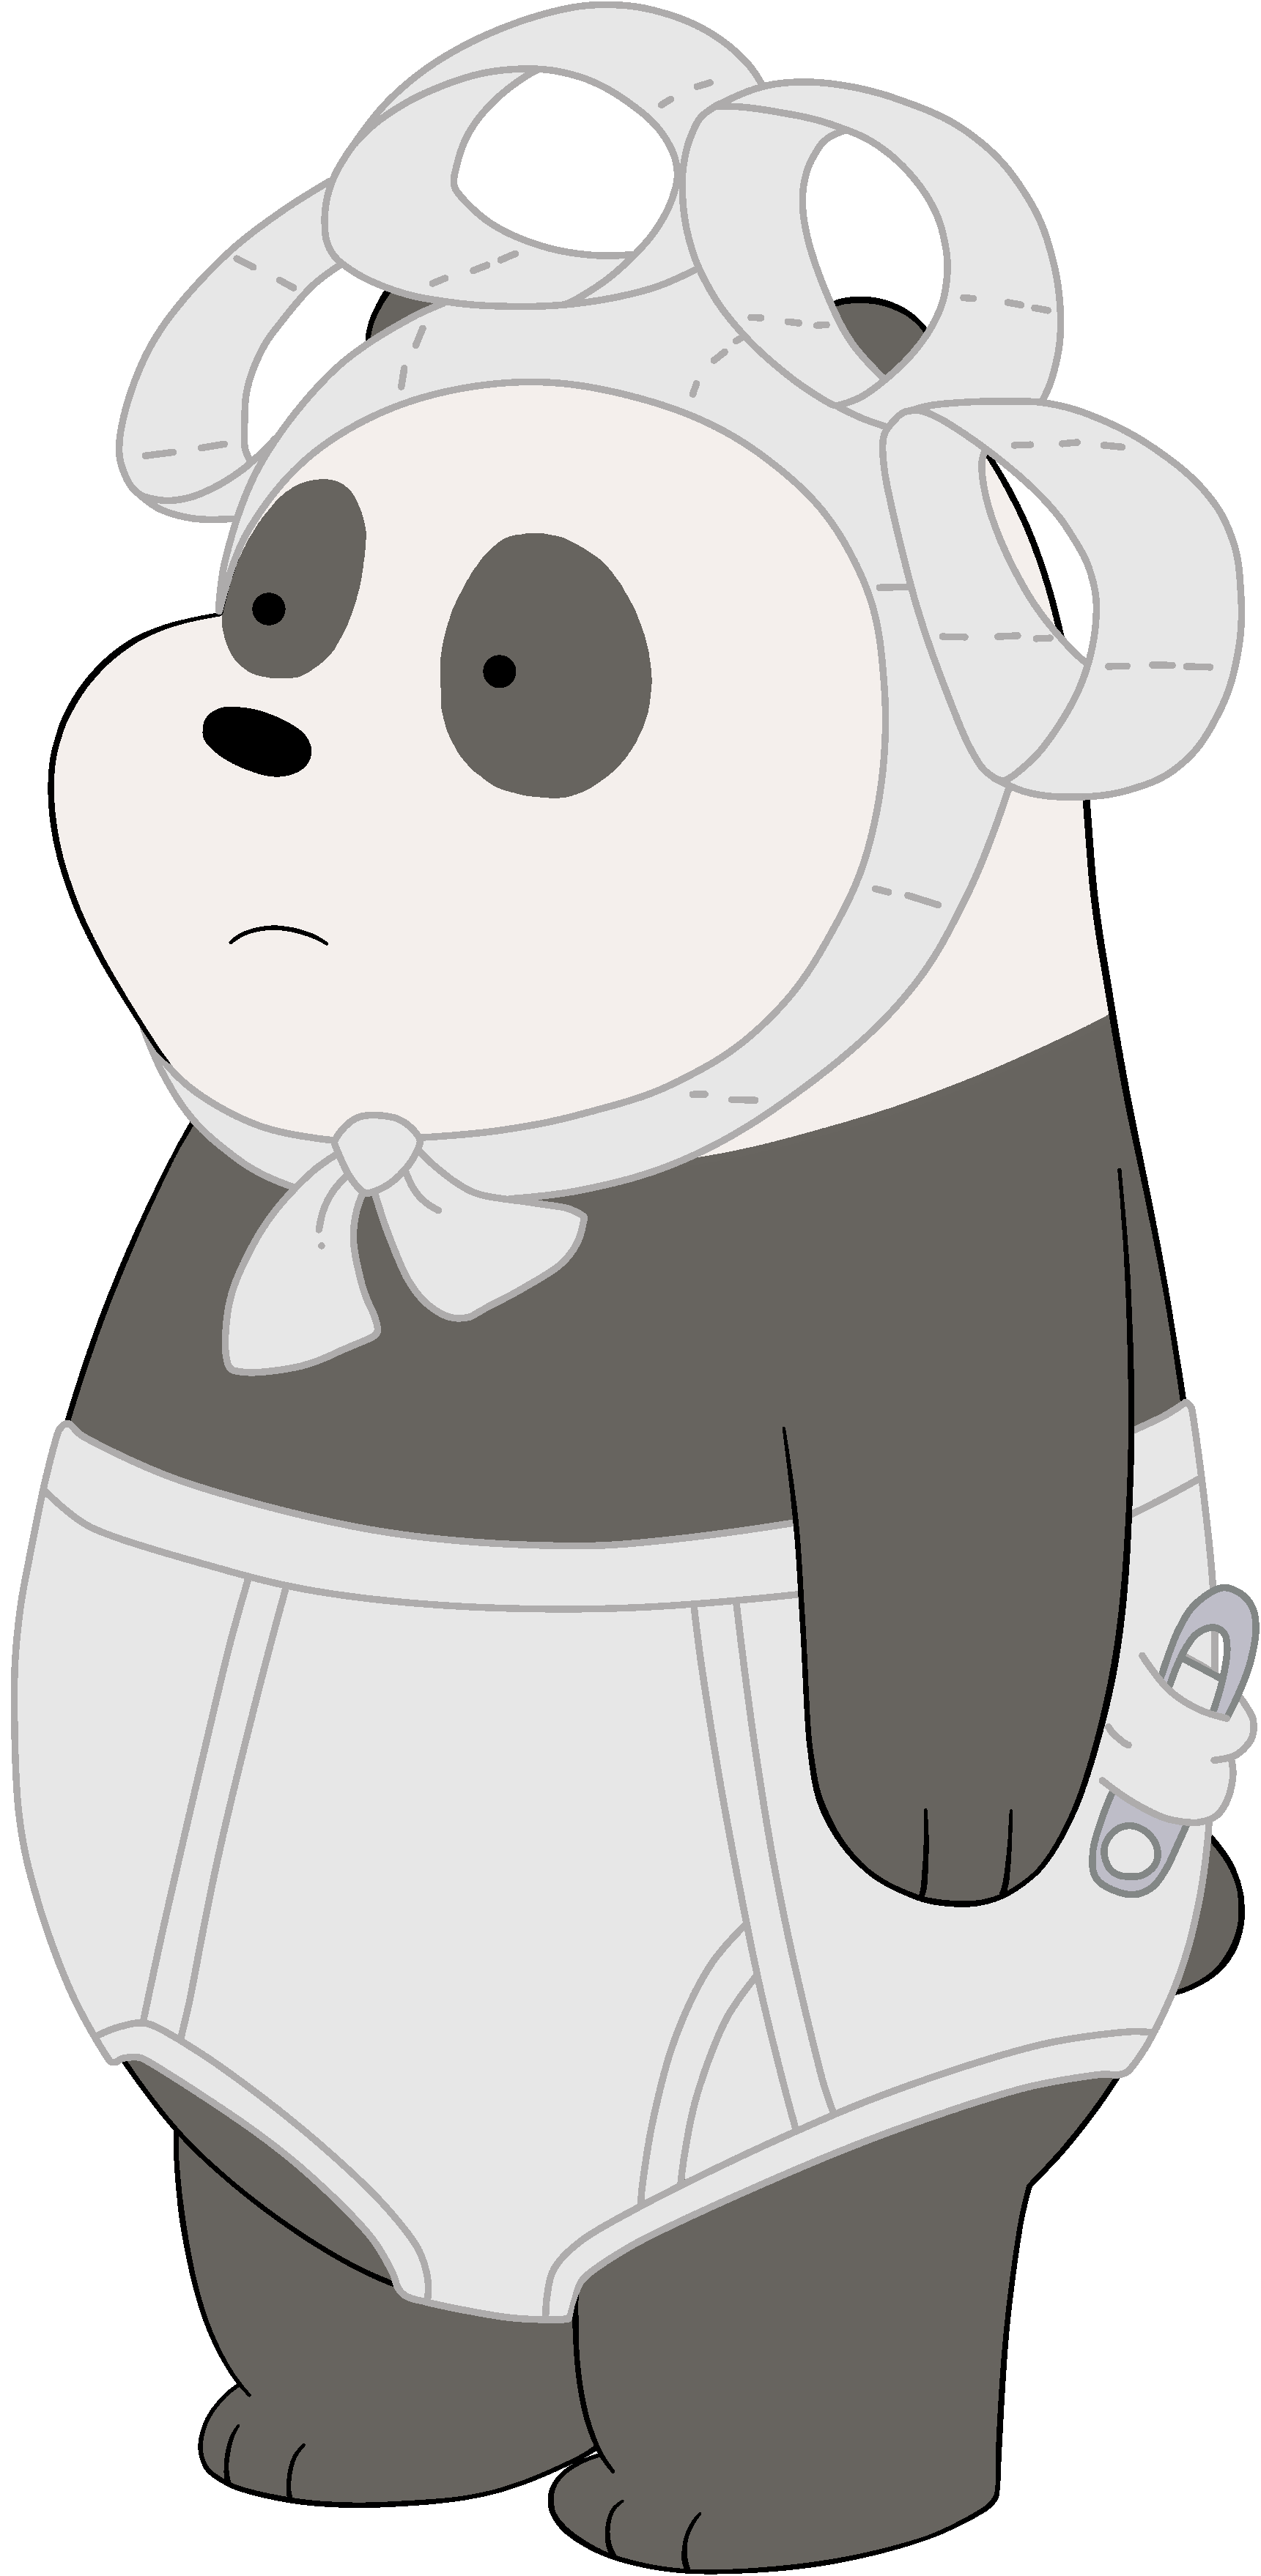 image diaper png we bare bears wiki fandom powered baby stuff clipart png baby stuff clipart